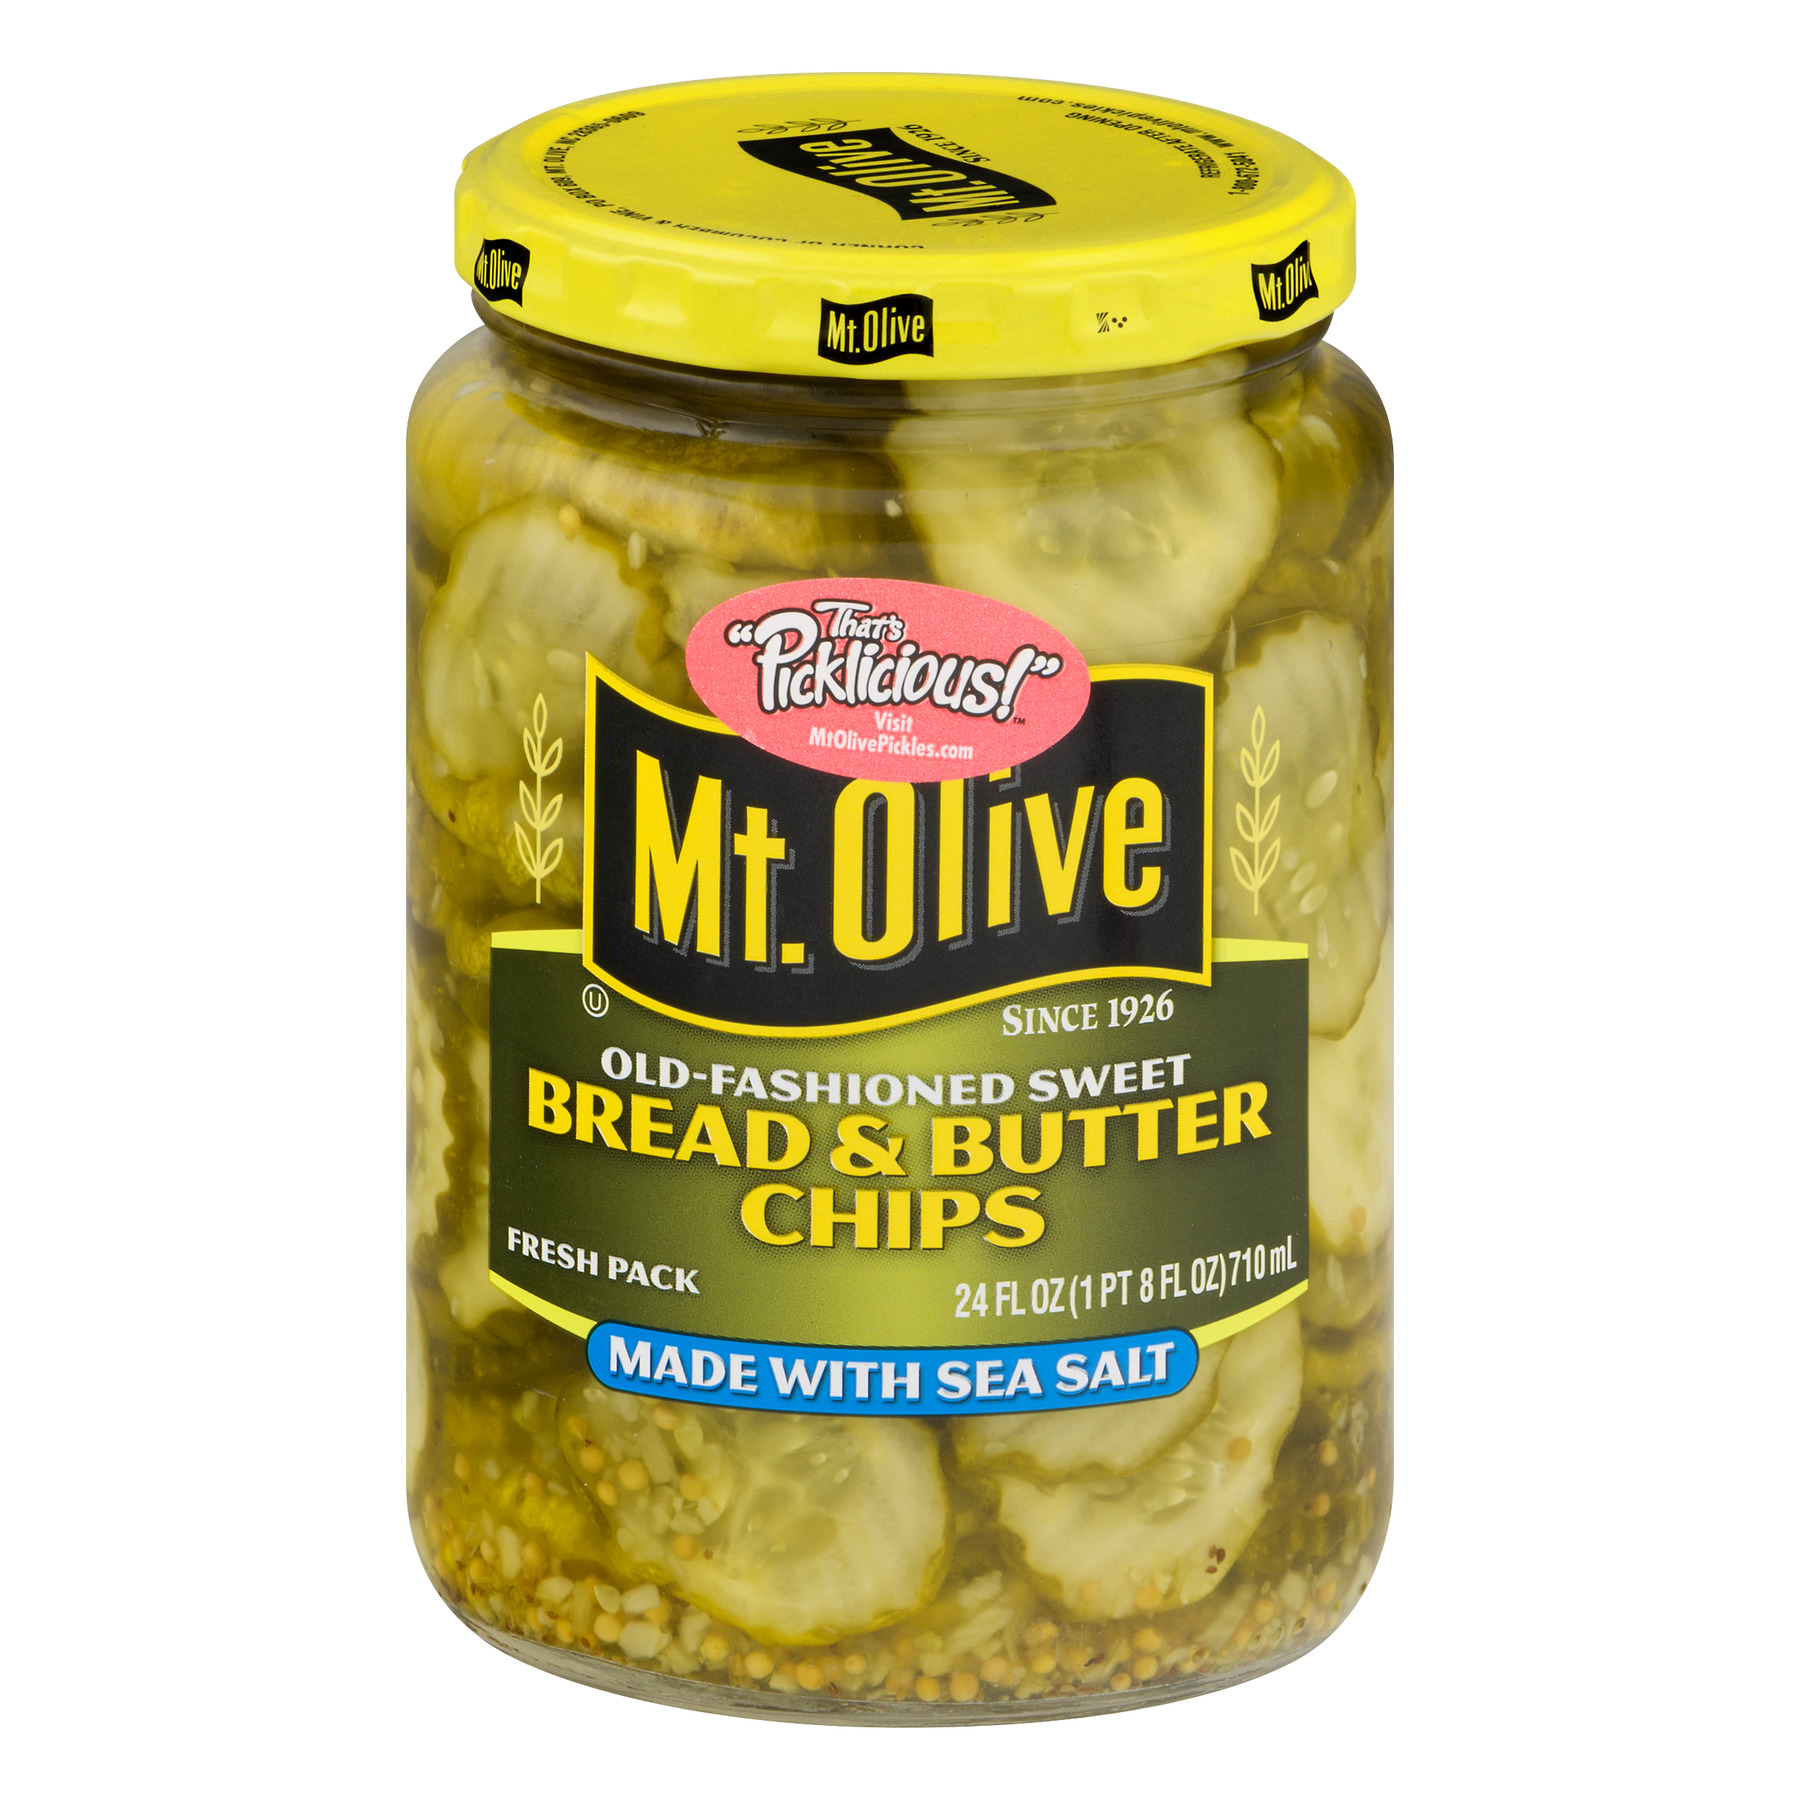 Mt. Olive Old-Fashioned Sweet Bread & Butter Chips, 24 oz